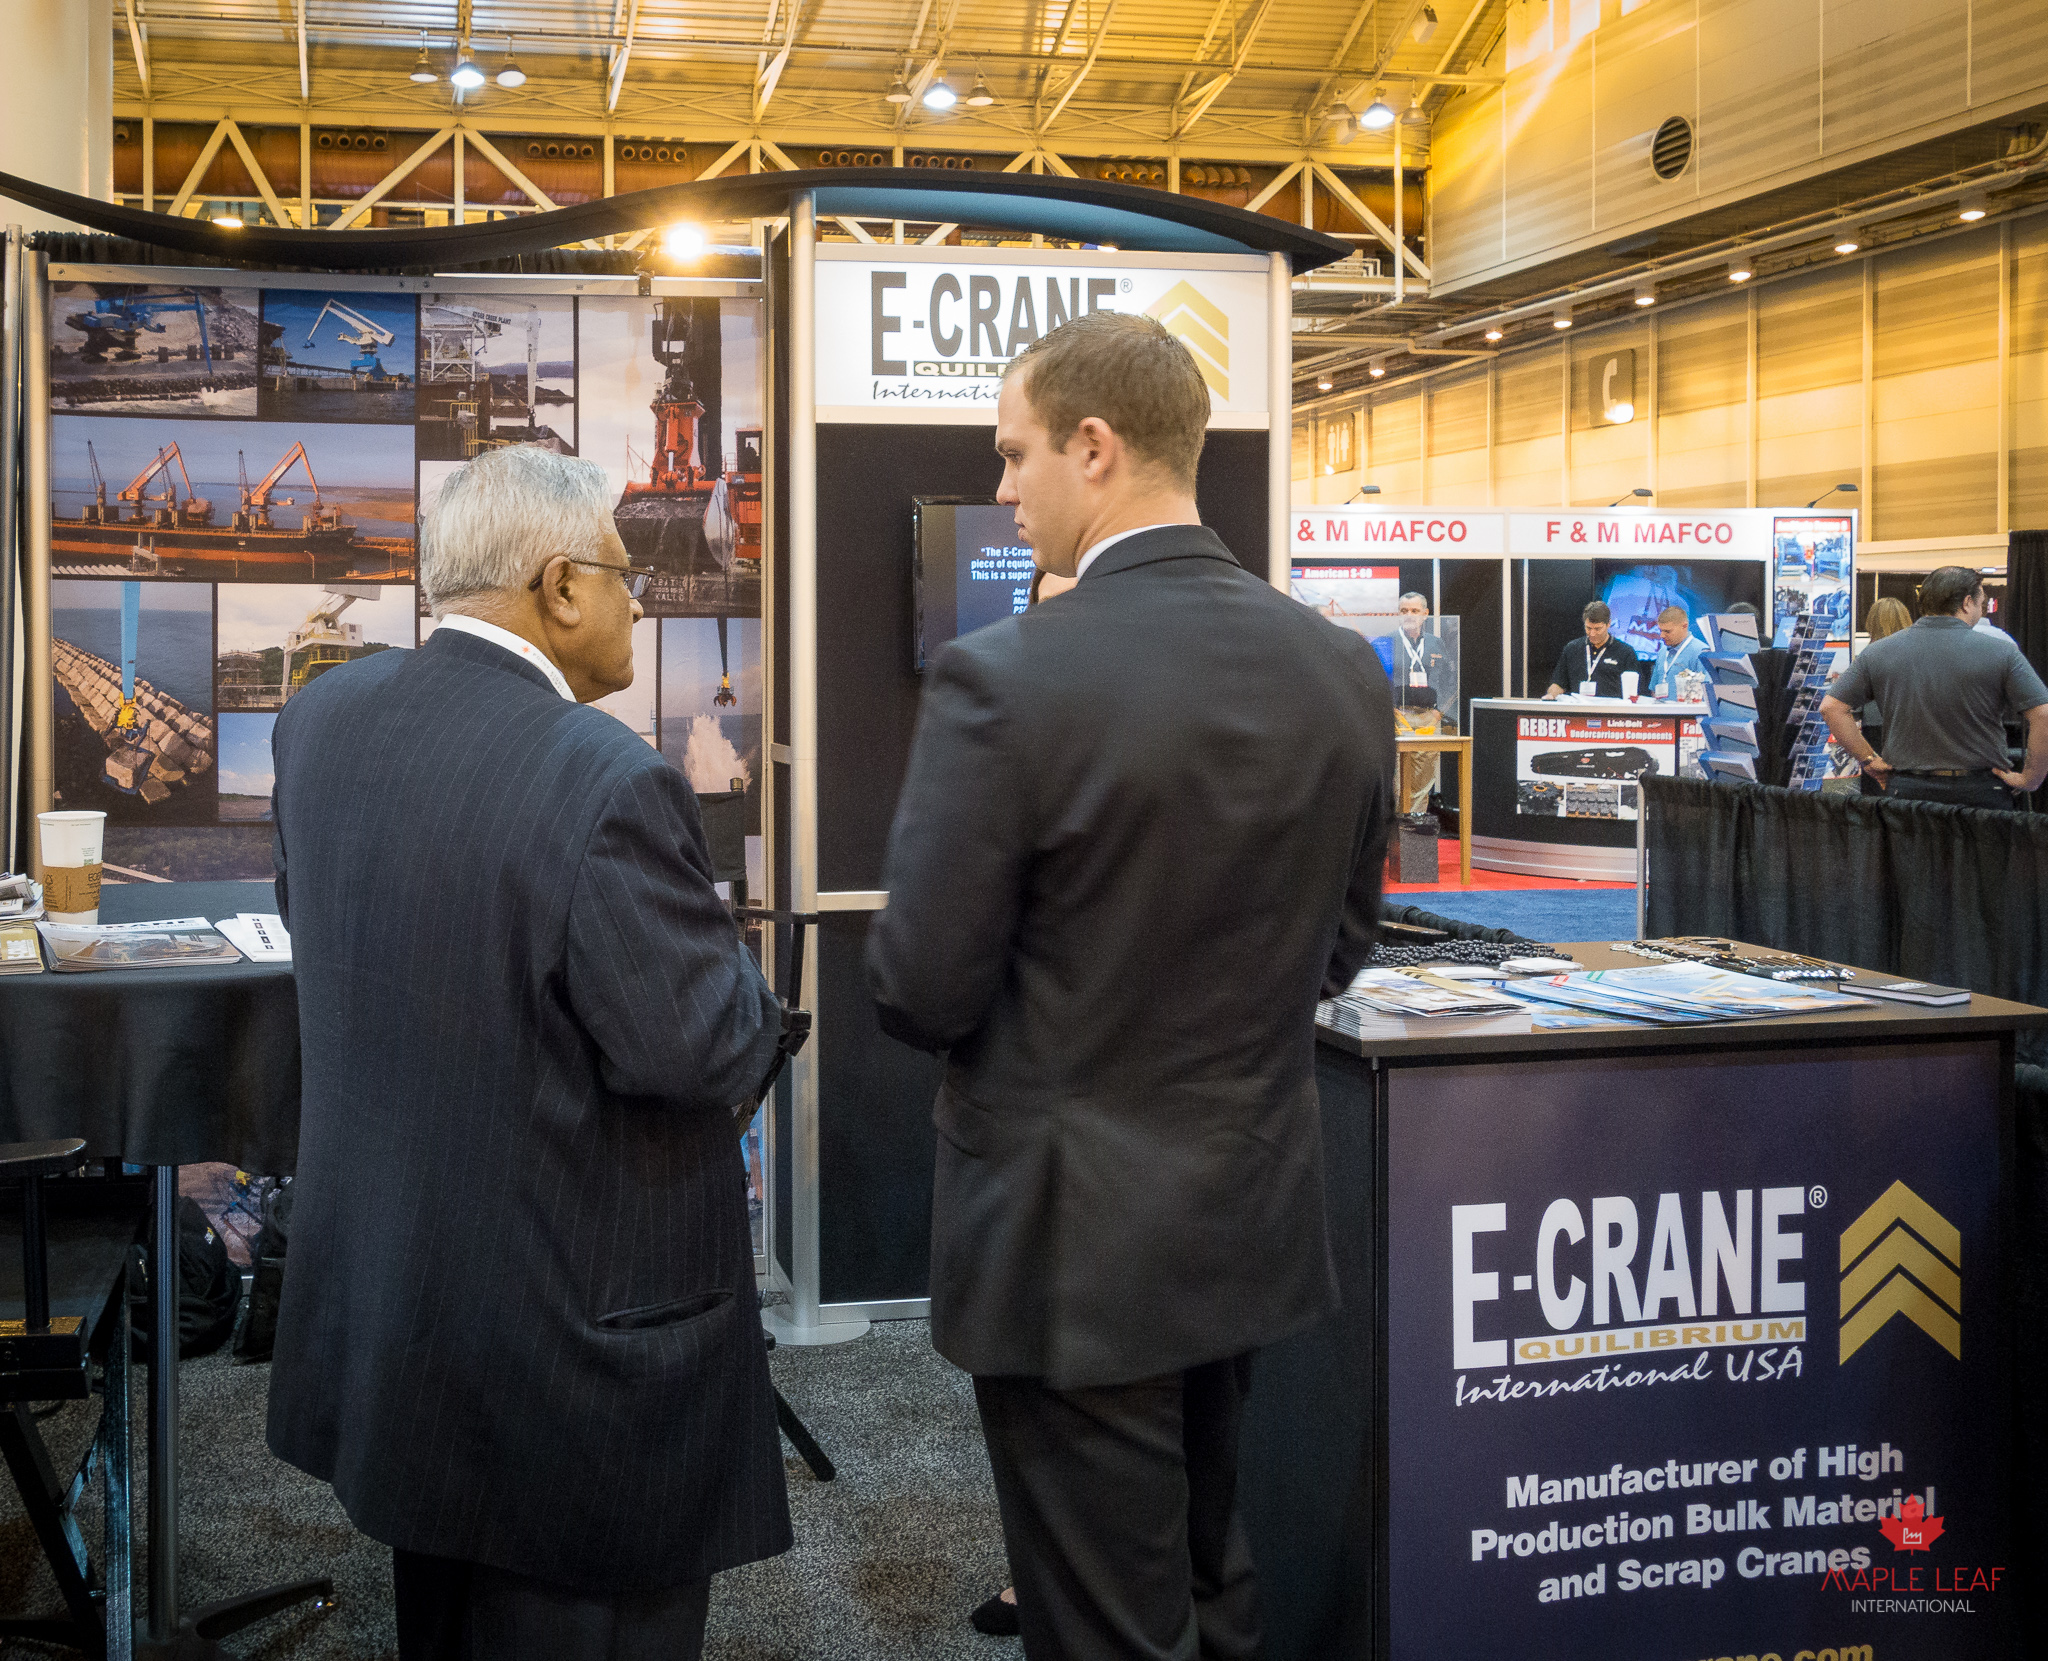 We visited the  E-Crane Worldwide  booth.